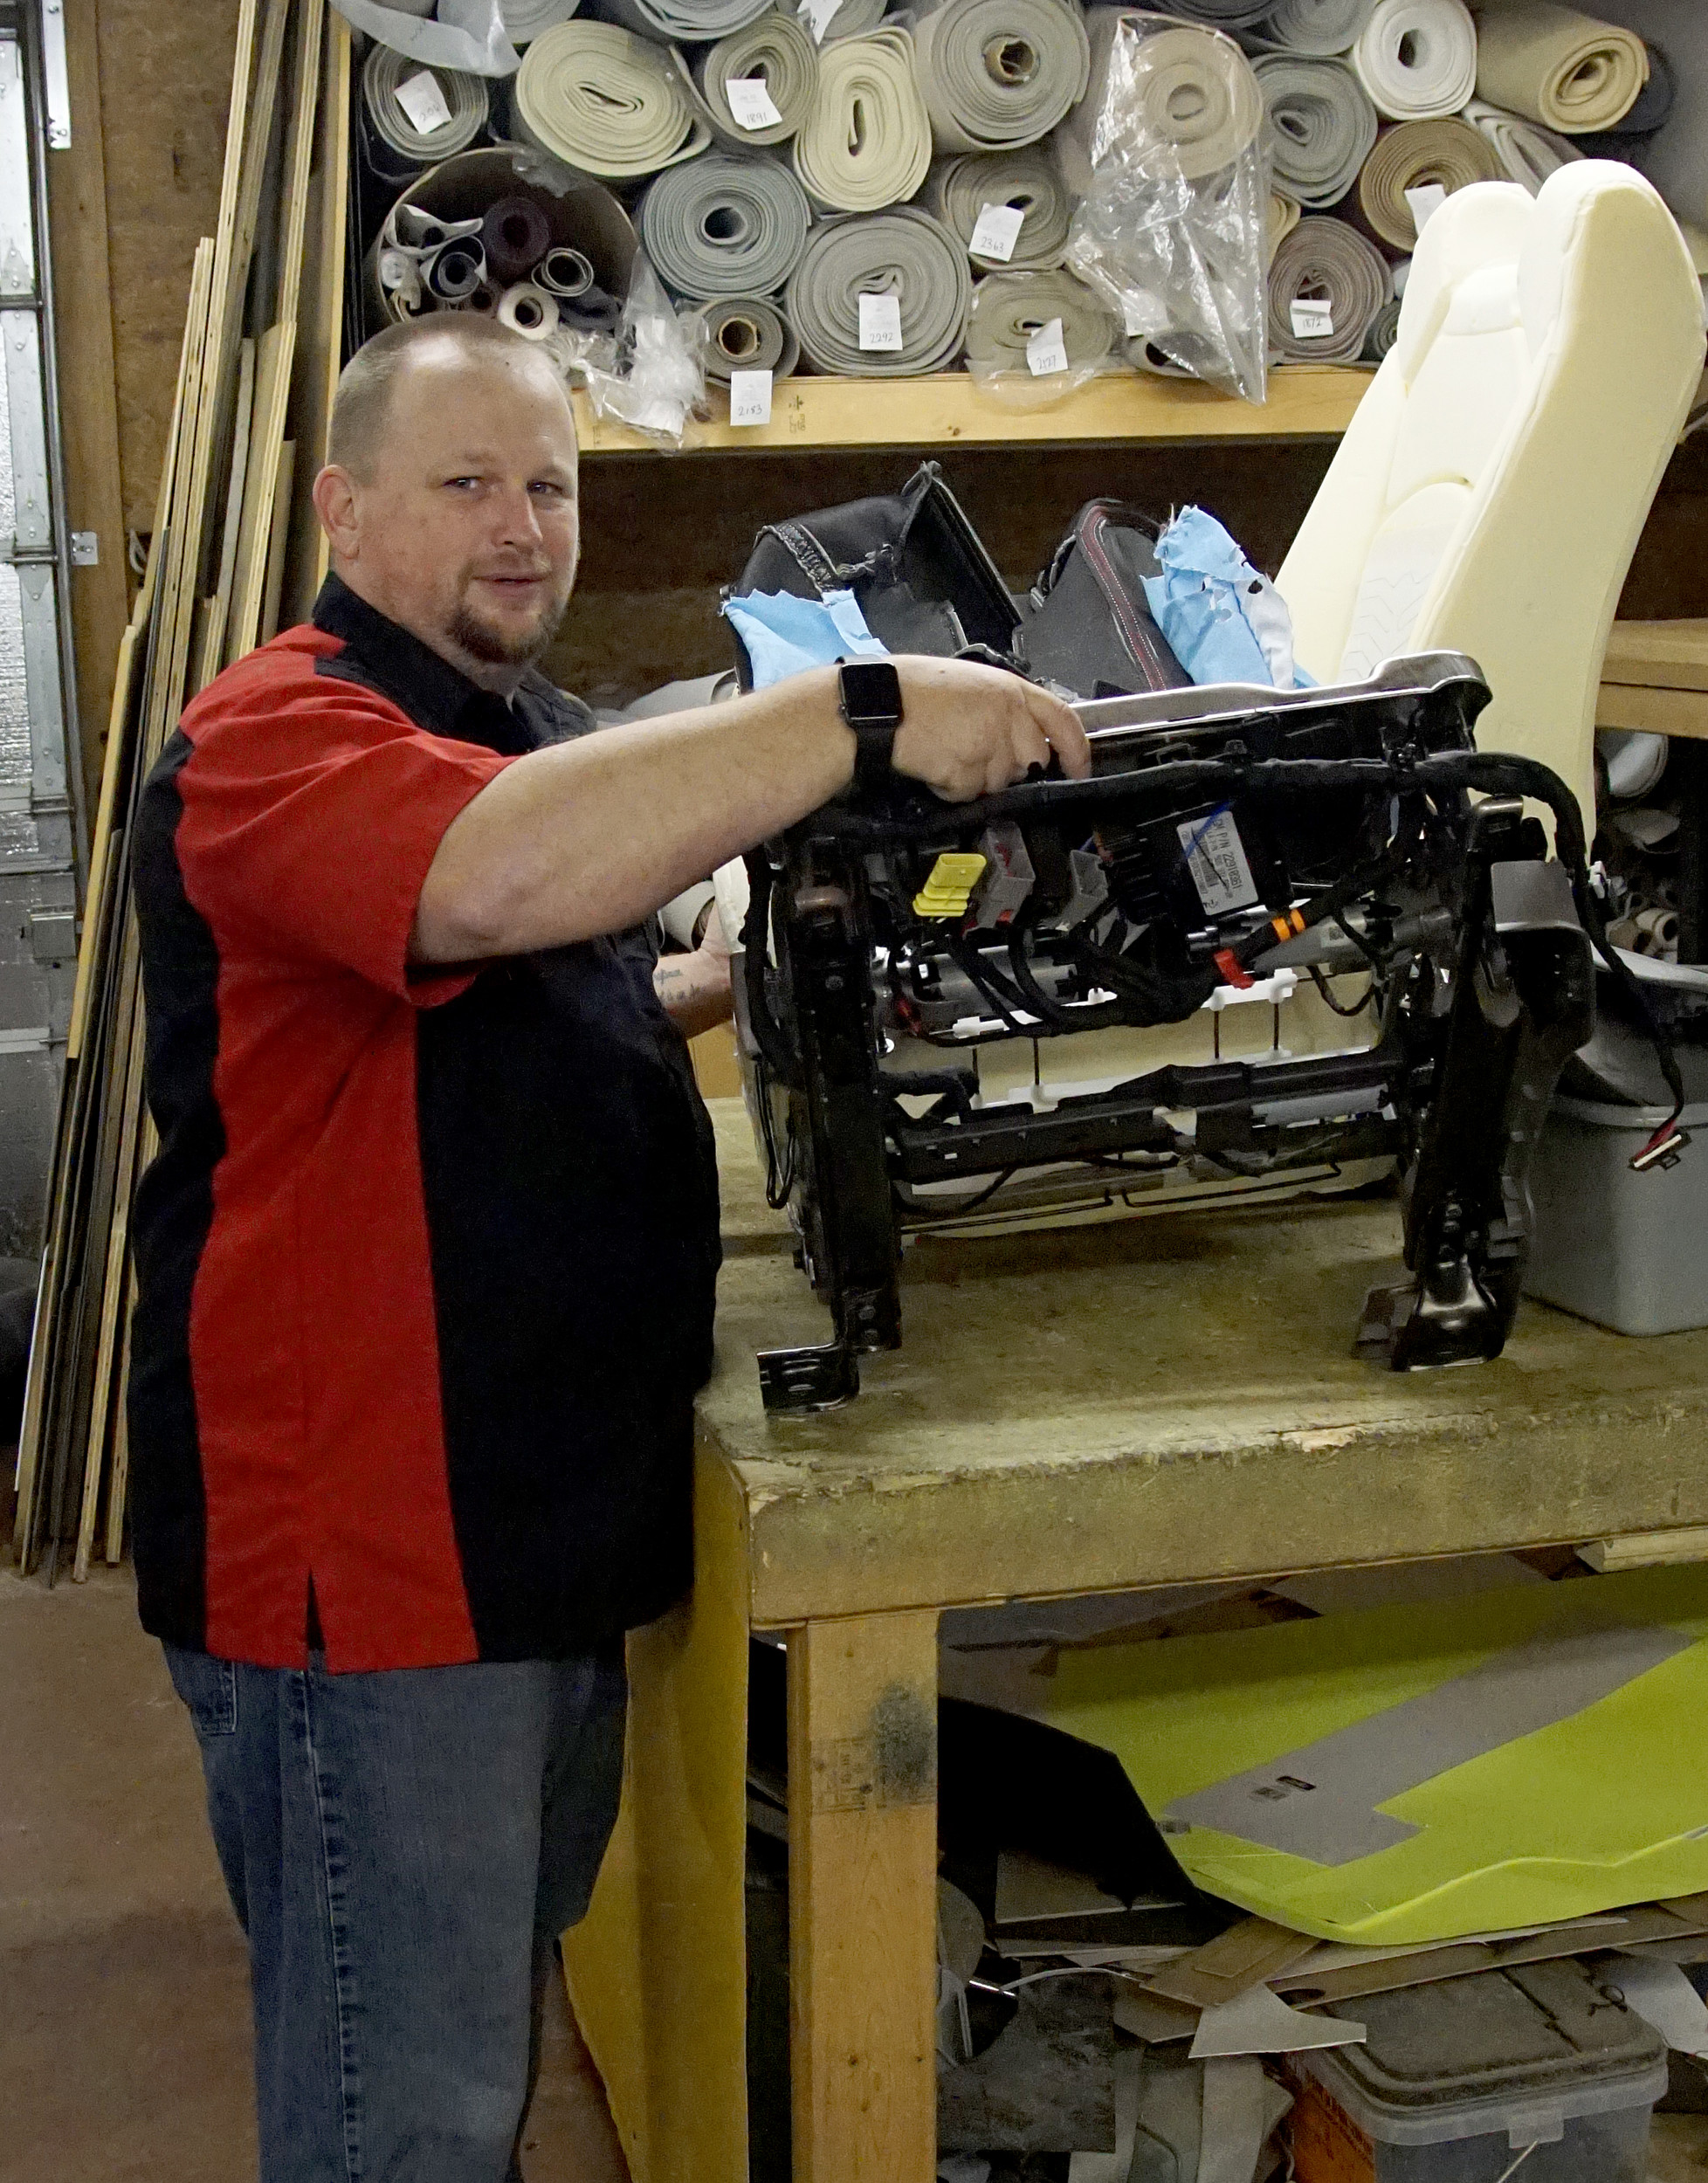 Chuck Bench, owner of Auto Pro Interiors in Dalzell, shows the components found underneath a modern automobile seat.